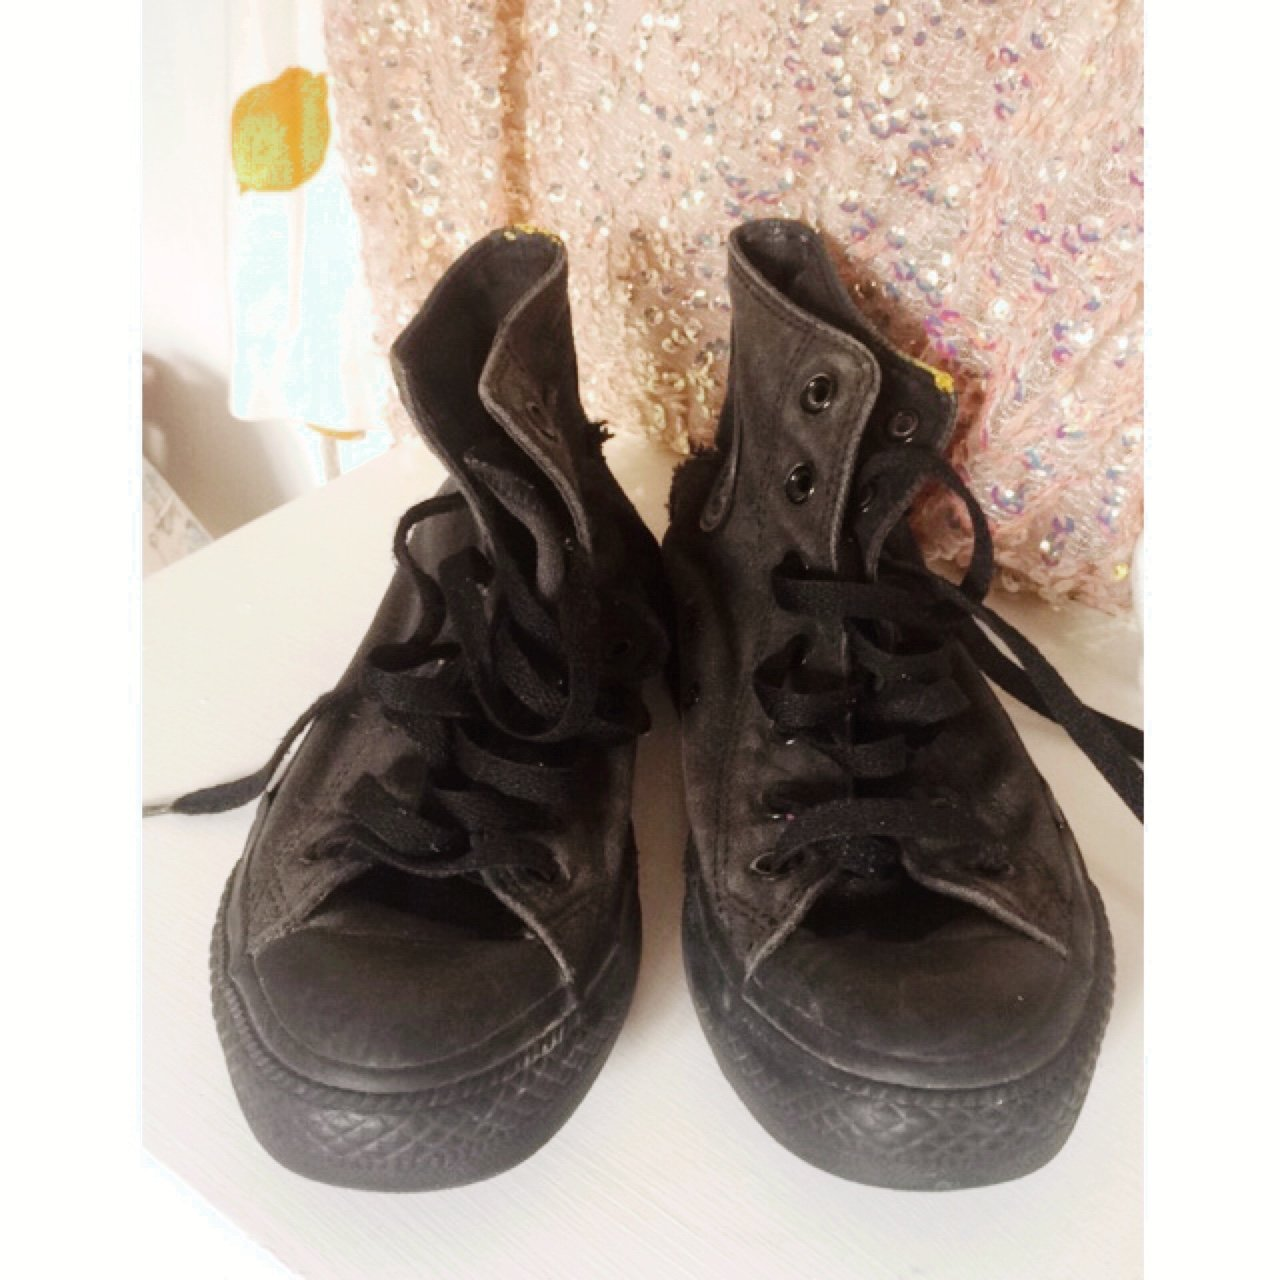 69f241b3c971 PRICE DROP. Originally £20 now £10!! Black high top converse - Depop